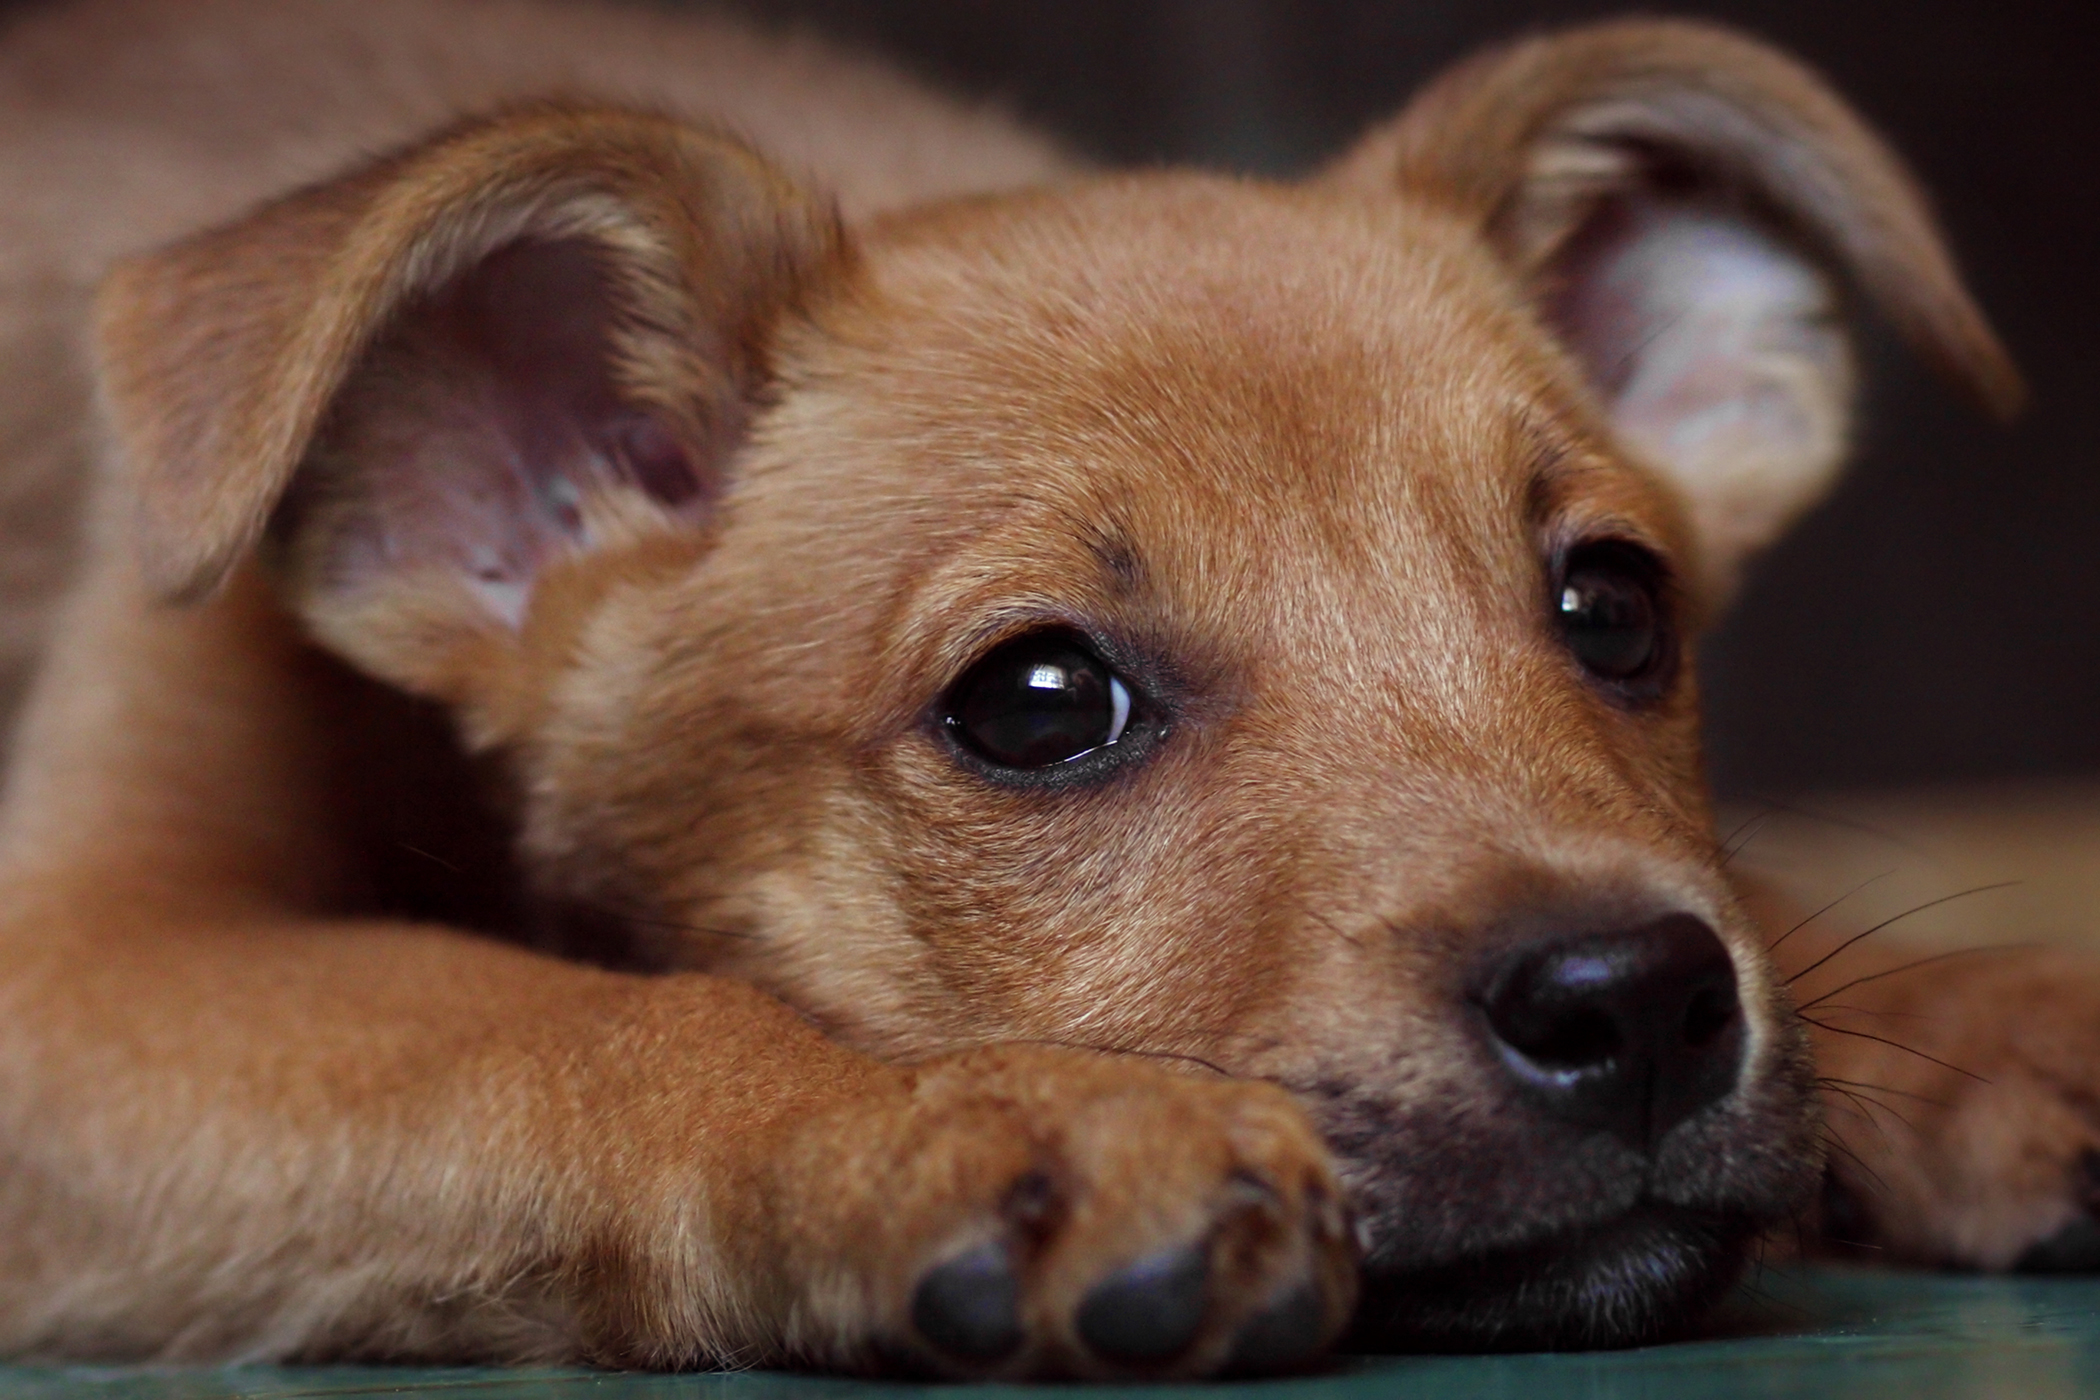 Closure of Medial Canthus in Dogs